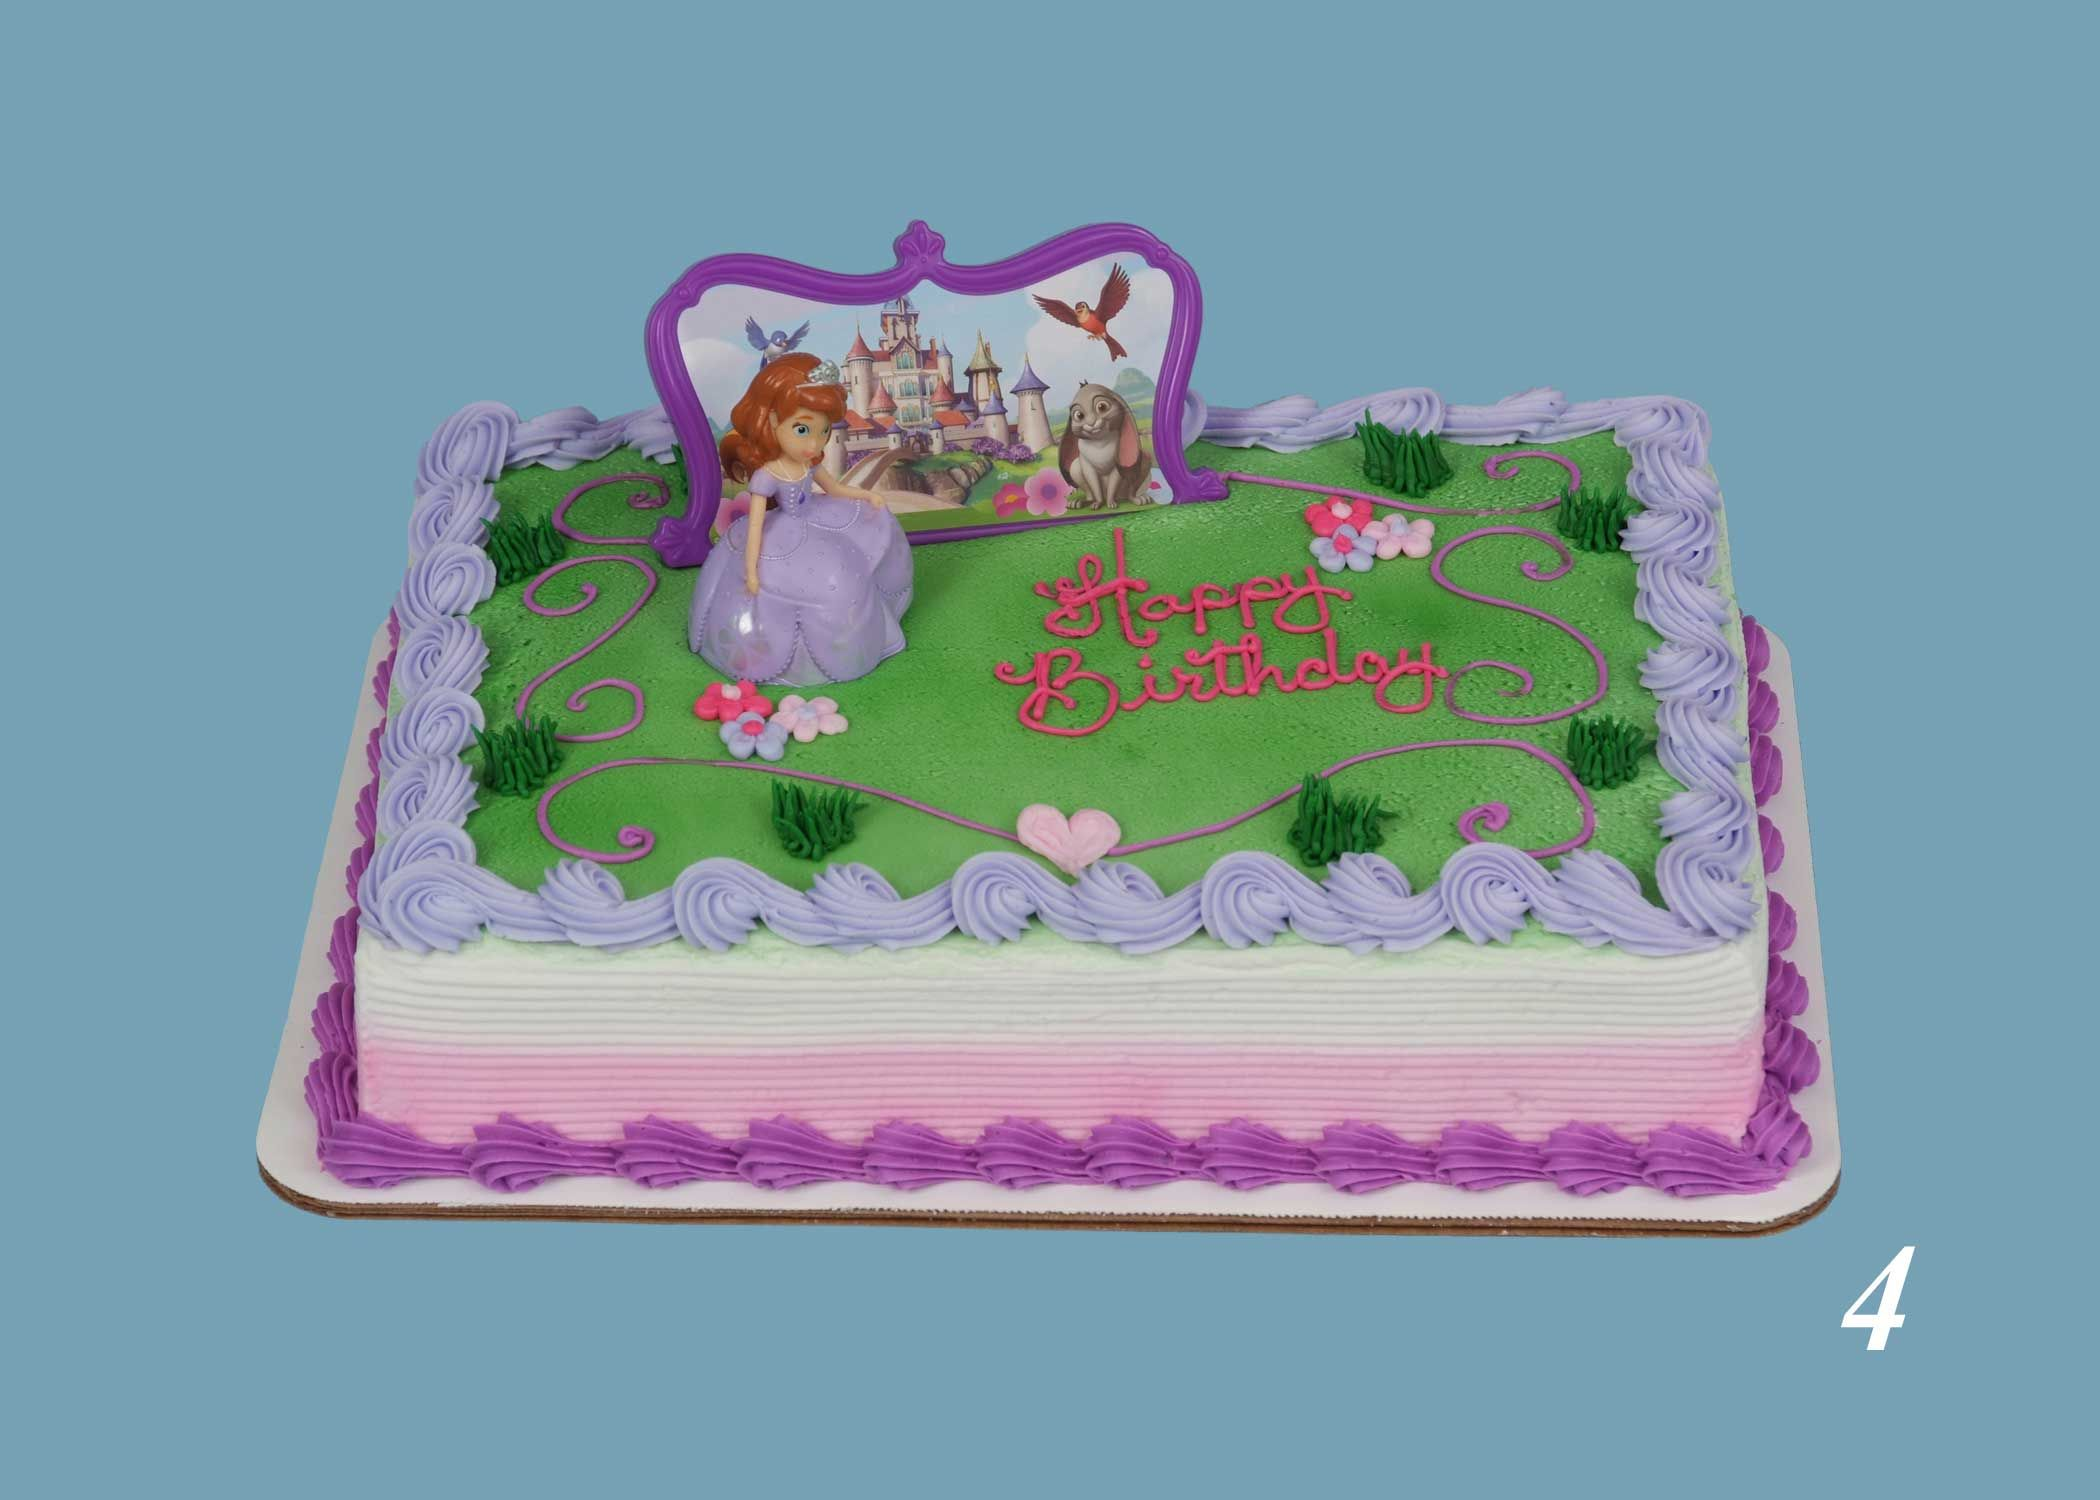 Schnucks Bakery Has A Variety Of Decorated Cakes Based On Your